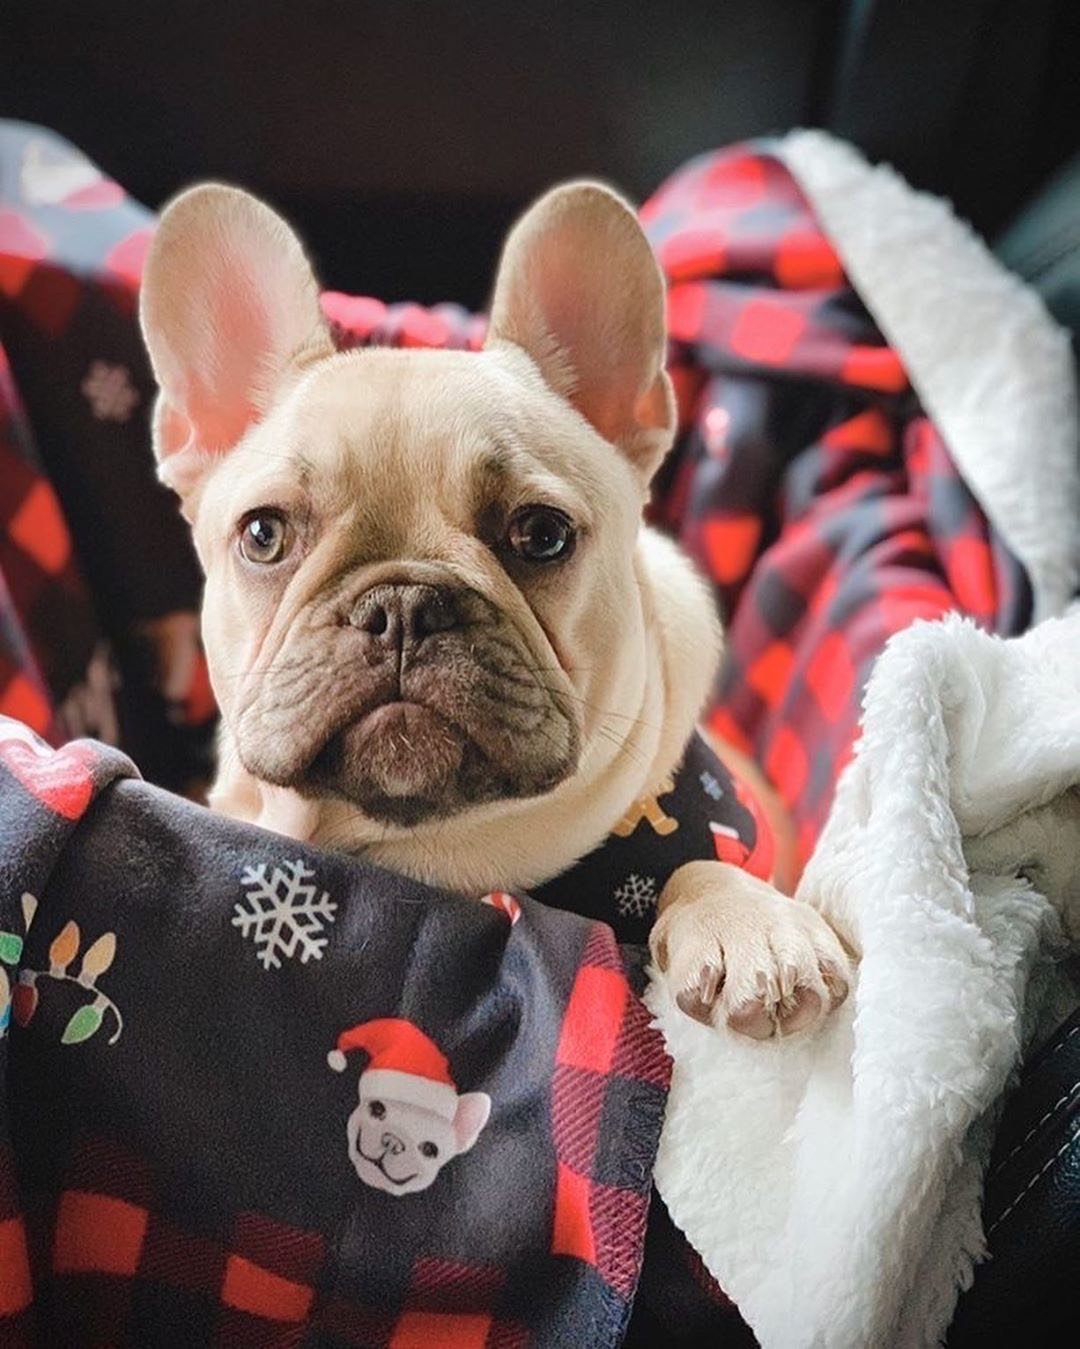 Frenchie Blanket | Frenchiestore | French Bulldog's Christmas, Frenchie Dog, French Bulldog pet products